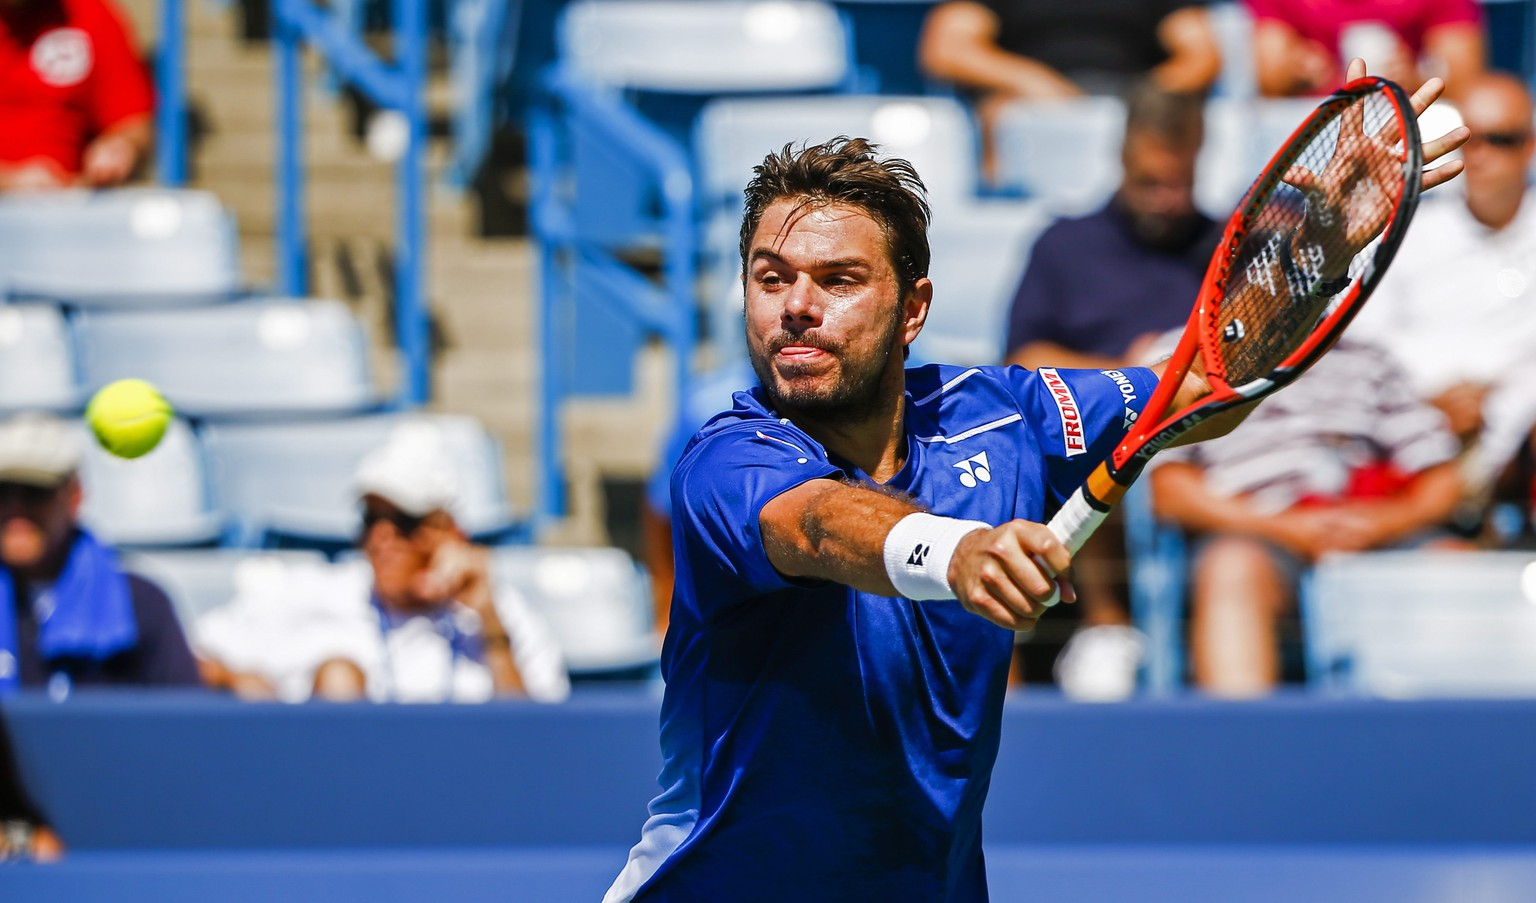 epa04890330 Stan Wawrinka of Switzerland hits a return shot to Ivo Karlovic of Croatia during their third round match in the Western & Southern Open at the Linder Family Tennis Center in Mason, Ohio, USA, 20 August 2015.  EPA/TANNEN MAURY